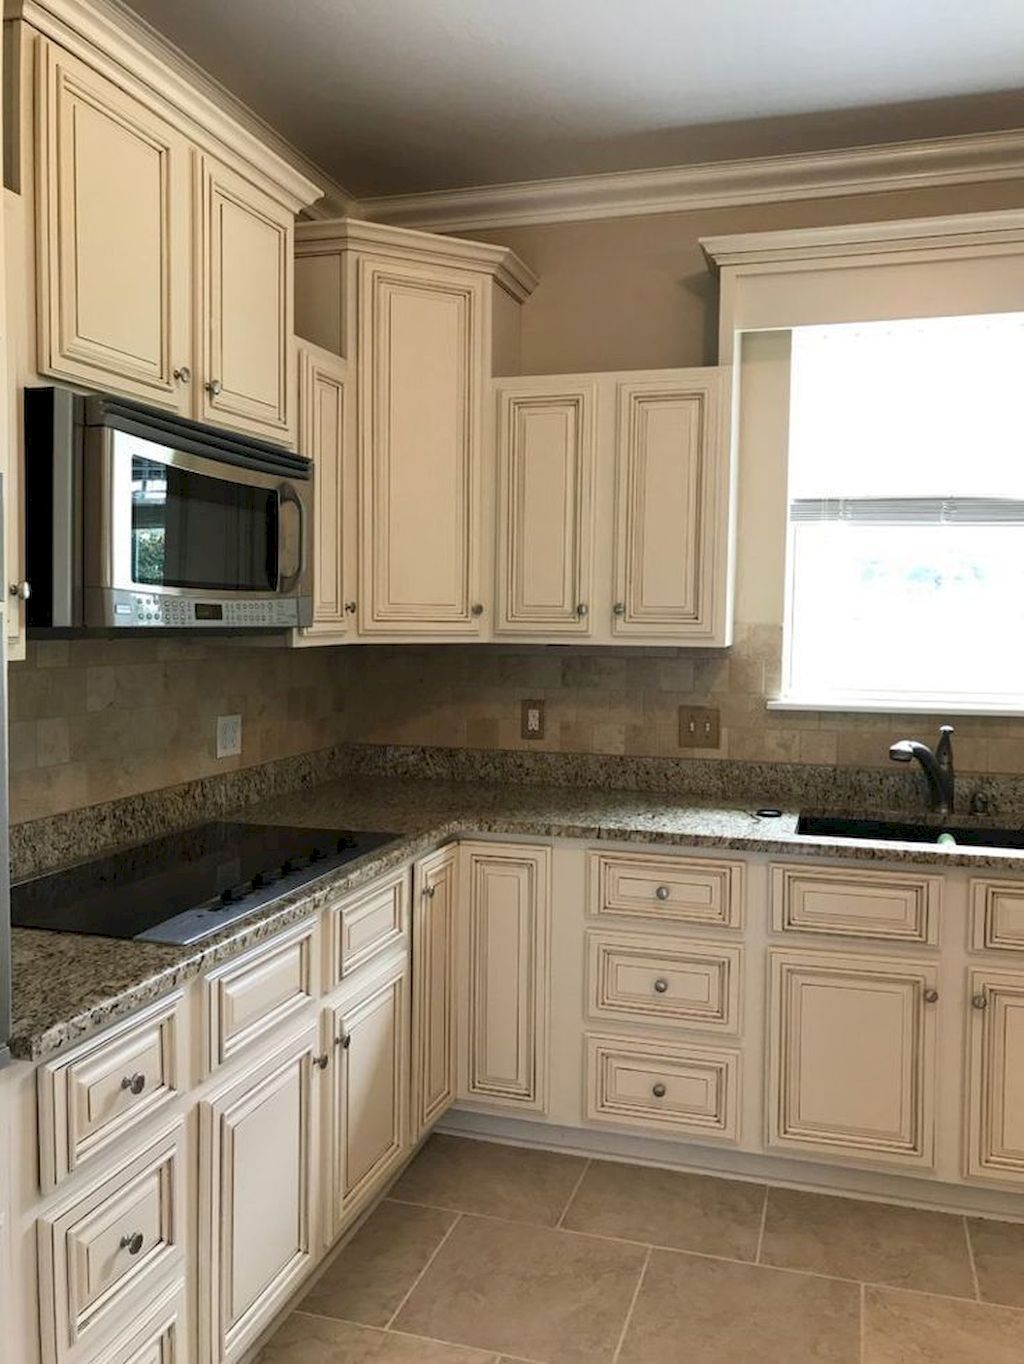 14 Ideas For A Kitchen Backsplash (With images) | Off ...